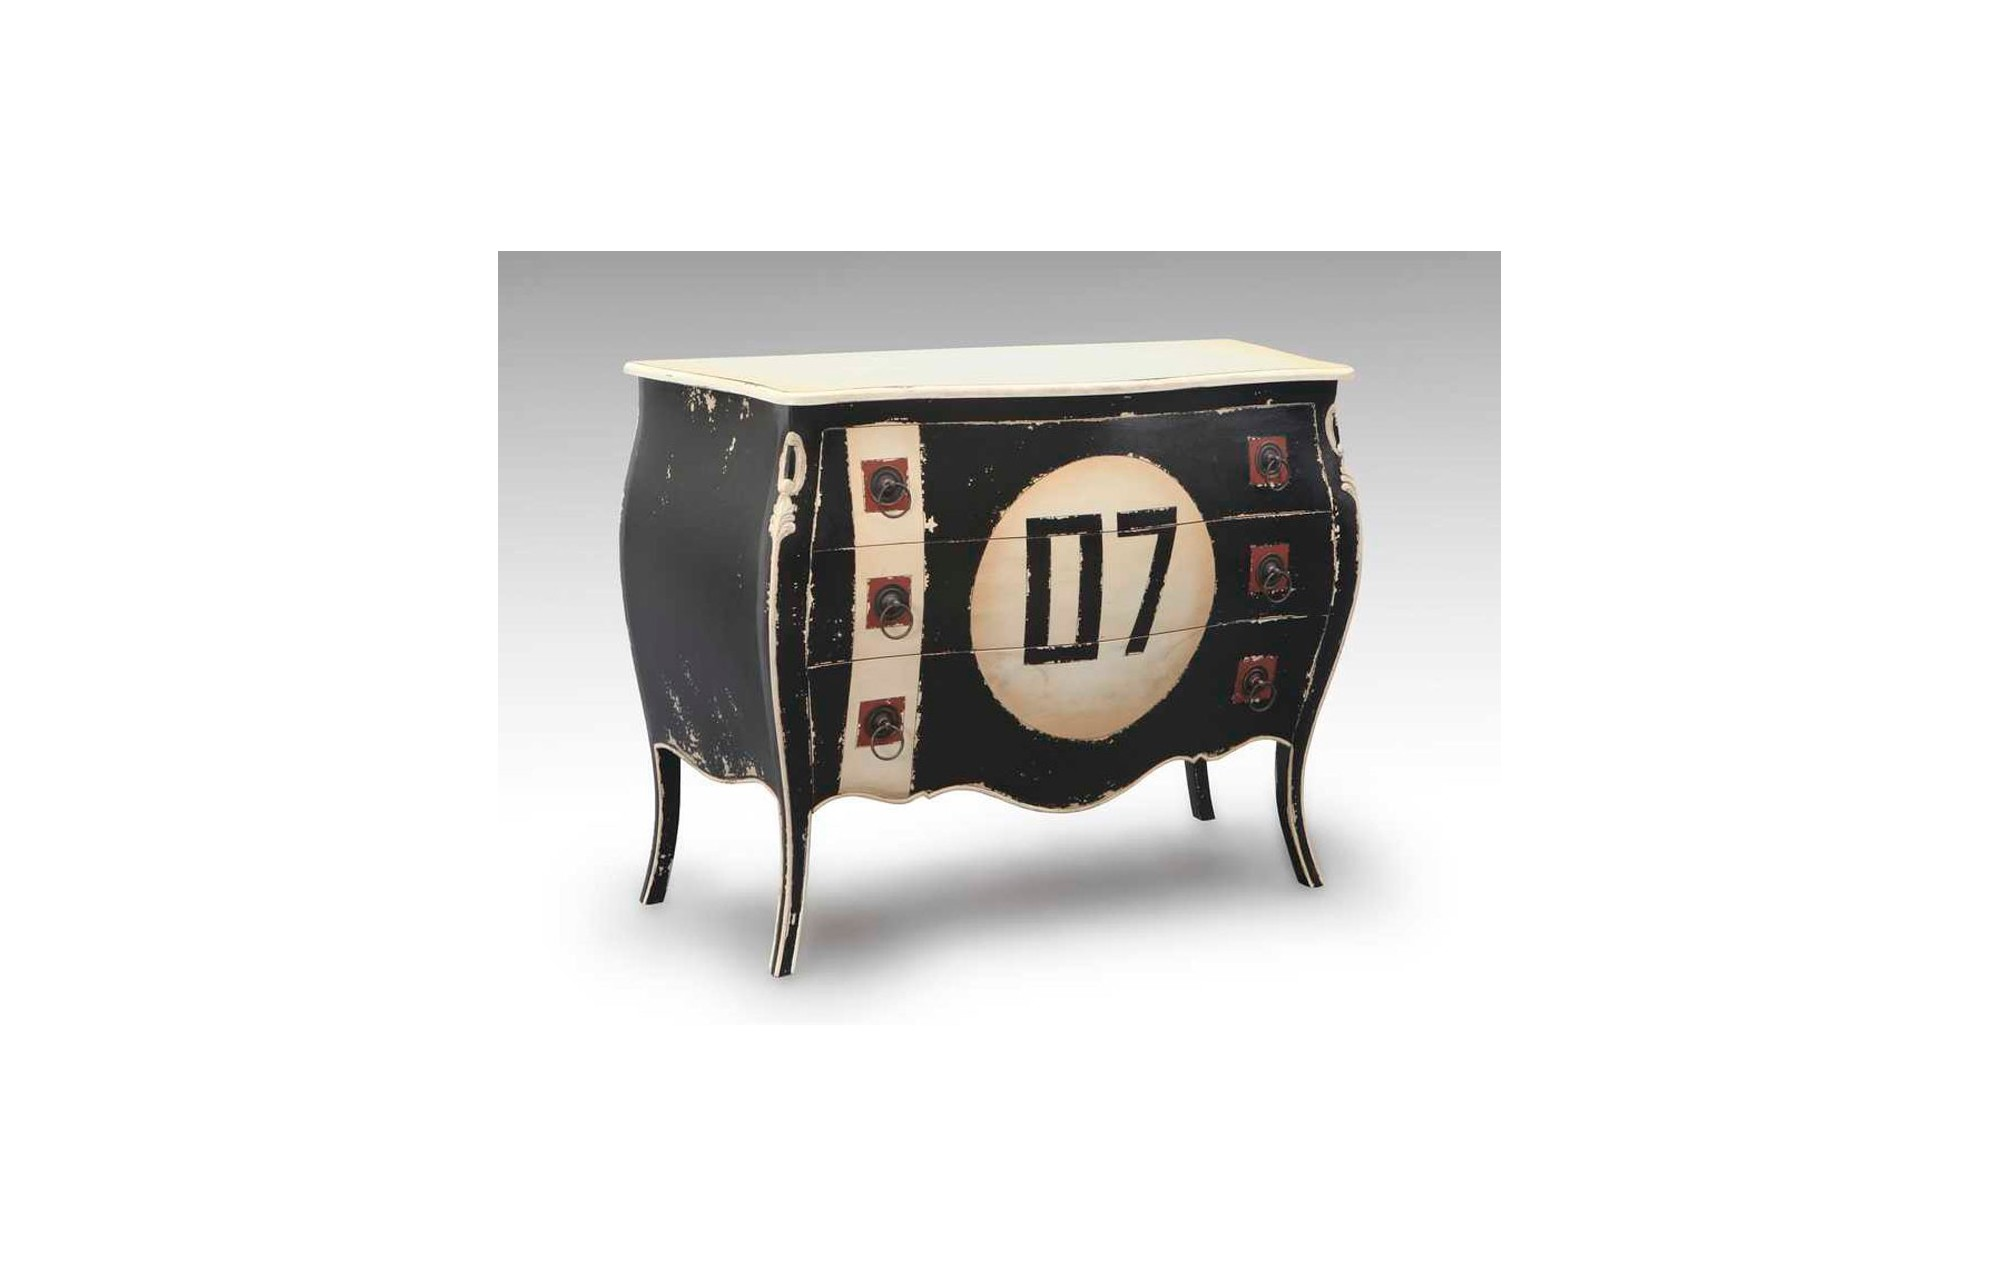 http://teck-in-home.com/1873-thickbox_gbm/commode-3-tiroirs-style-ancien-et-deco-fantaisie.jpg